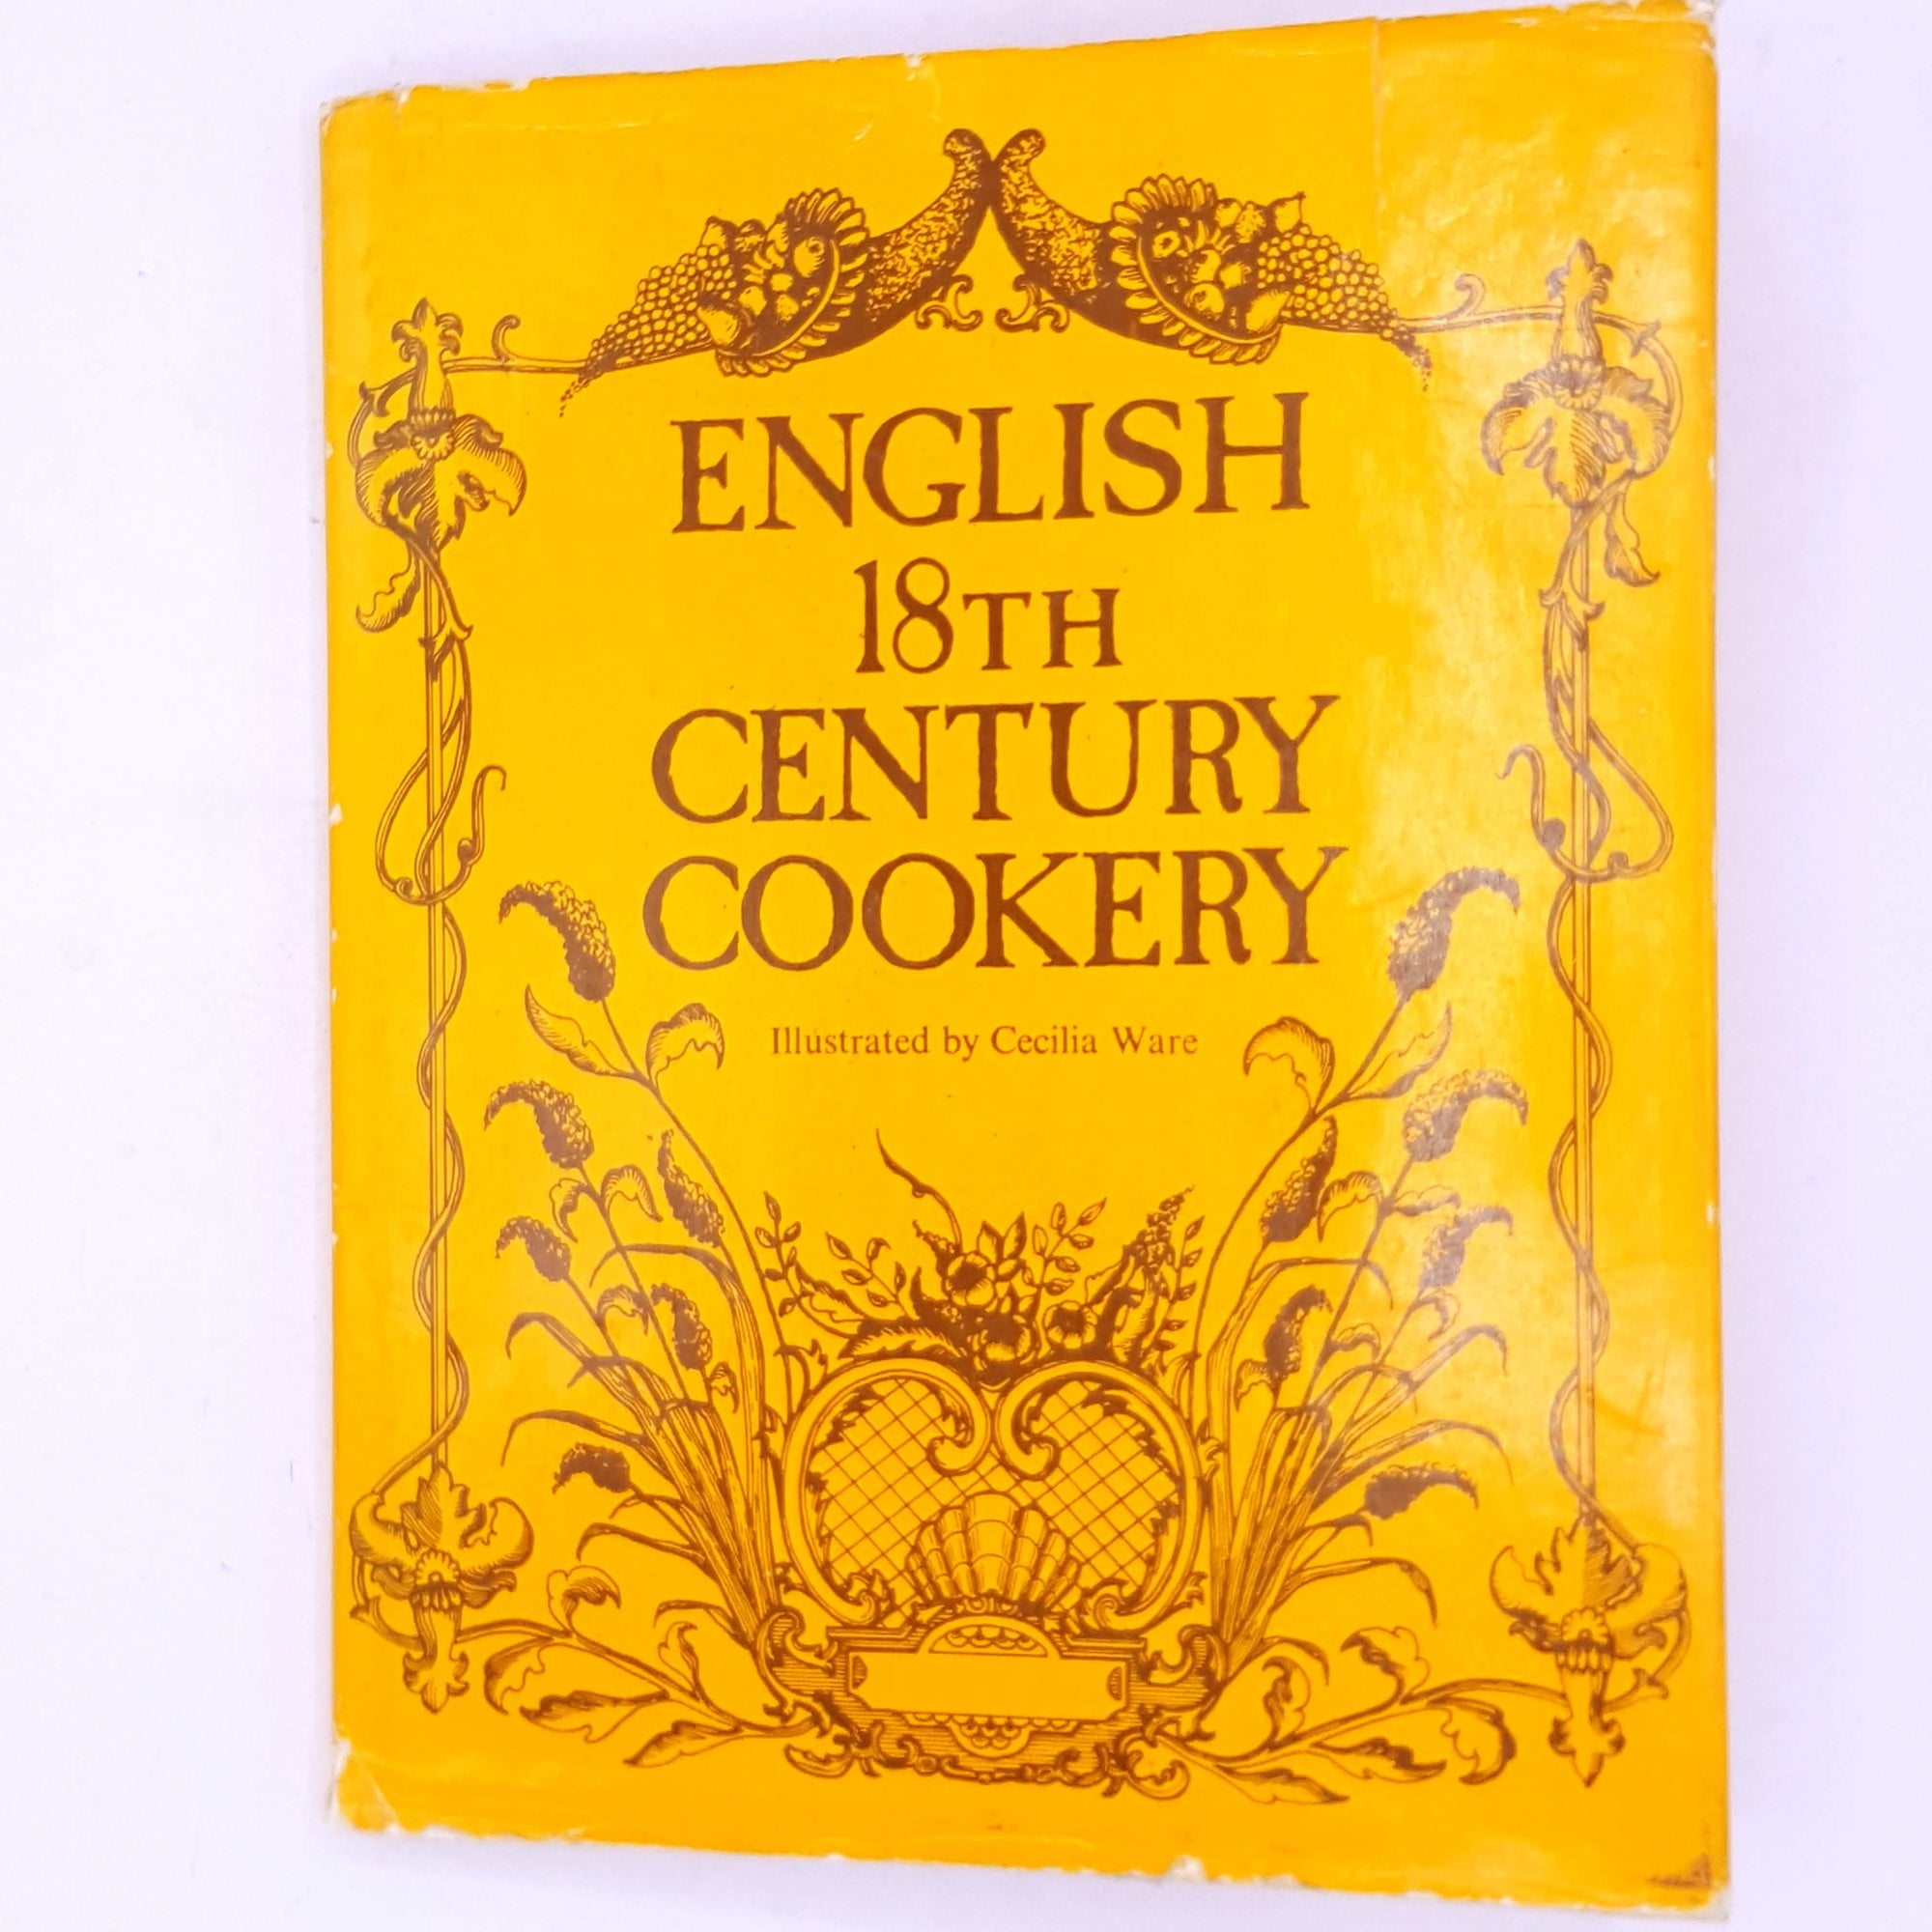 books-English-18th-century-cookery-british-england-english-cooking-cookbook-recipes-historical-cooking-classic-decorative-country-house-library-thrift-antique-vintage-old-patterned-